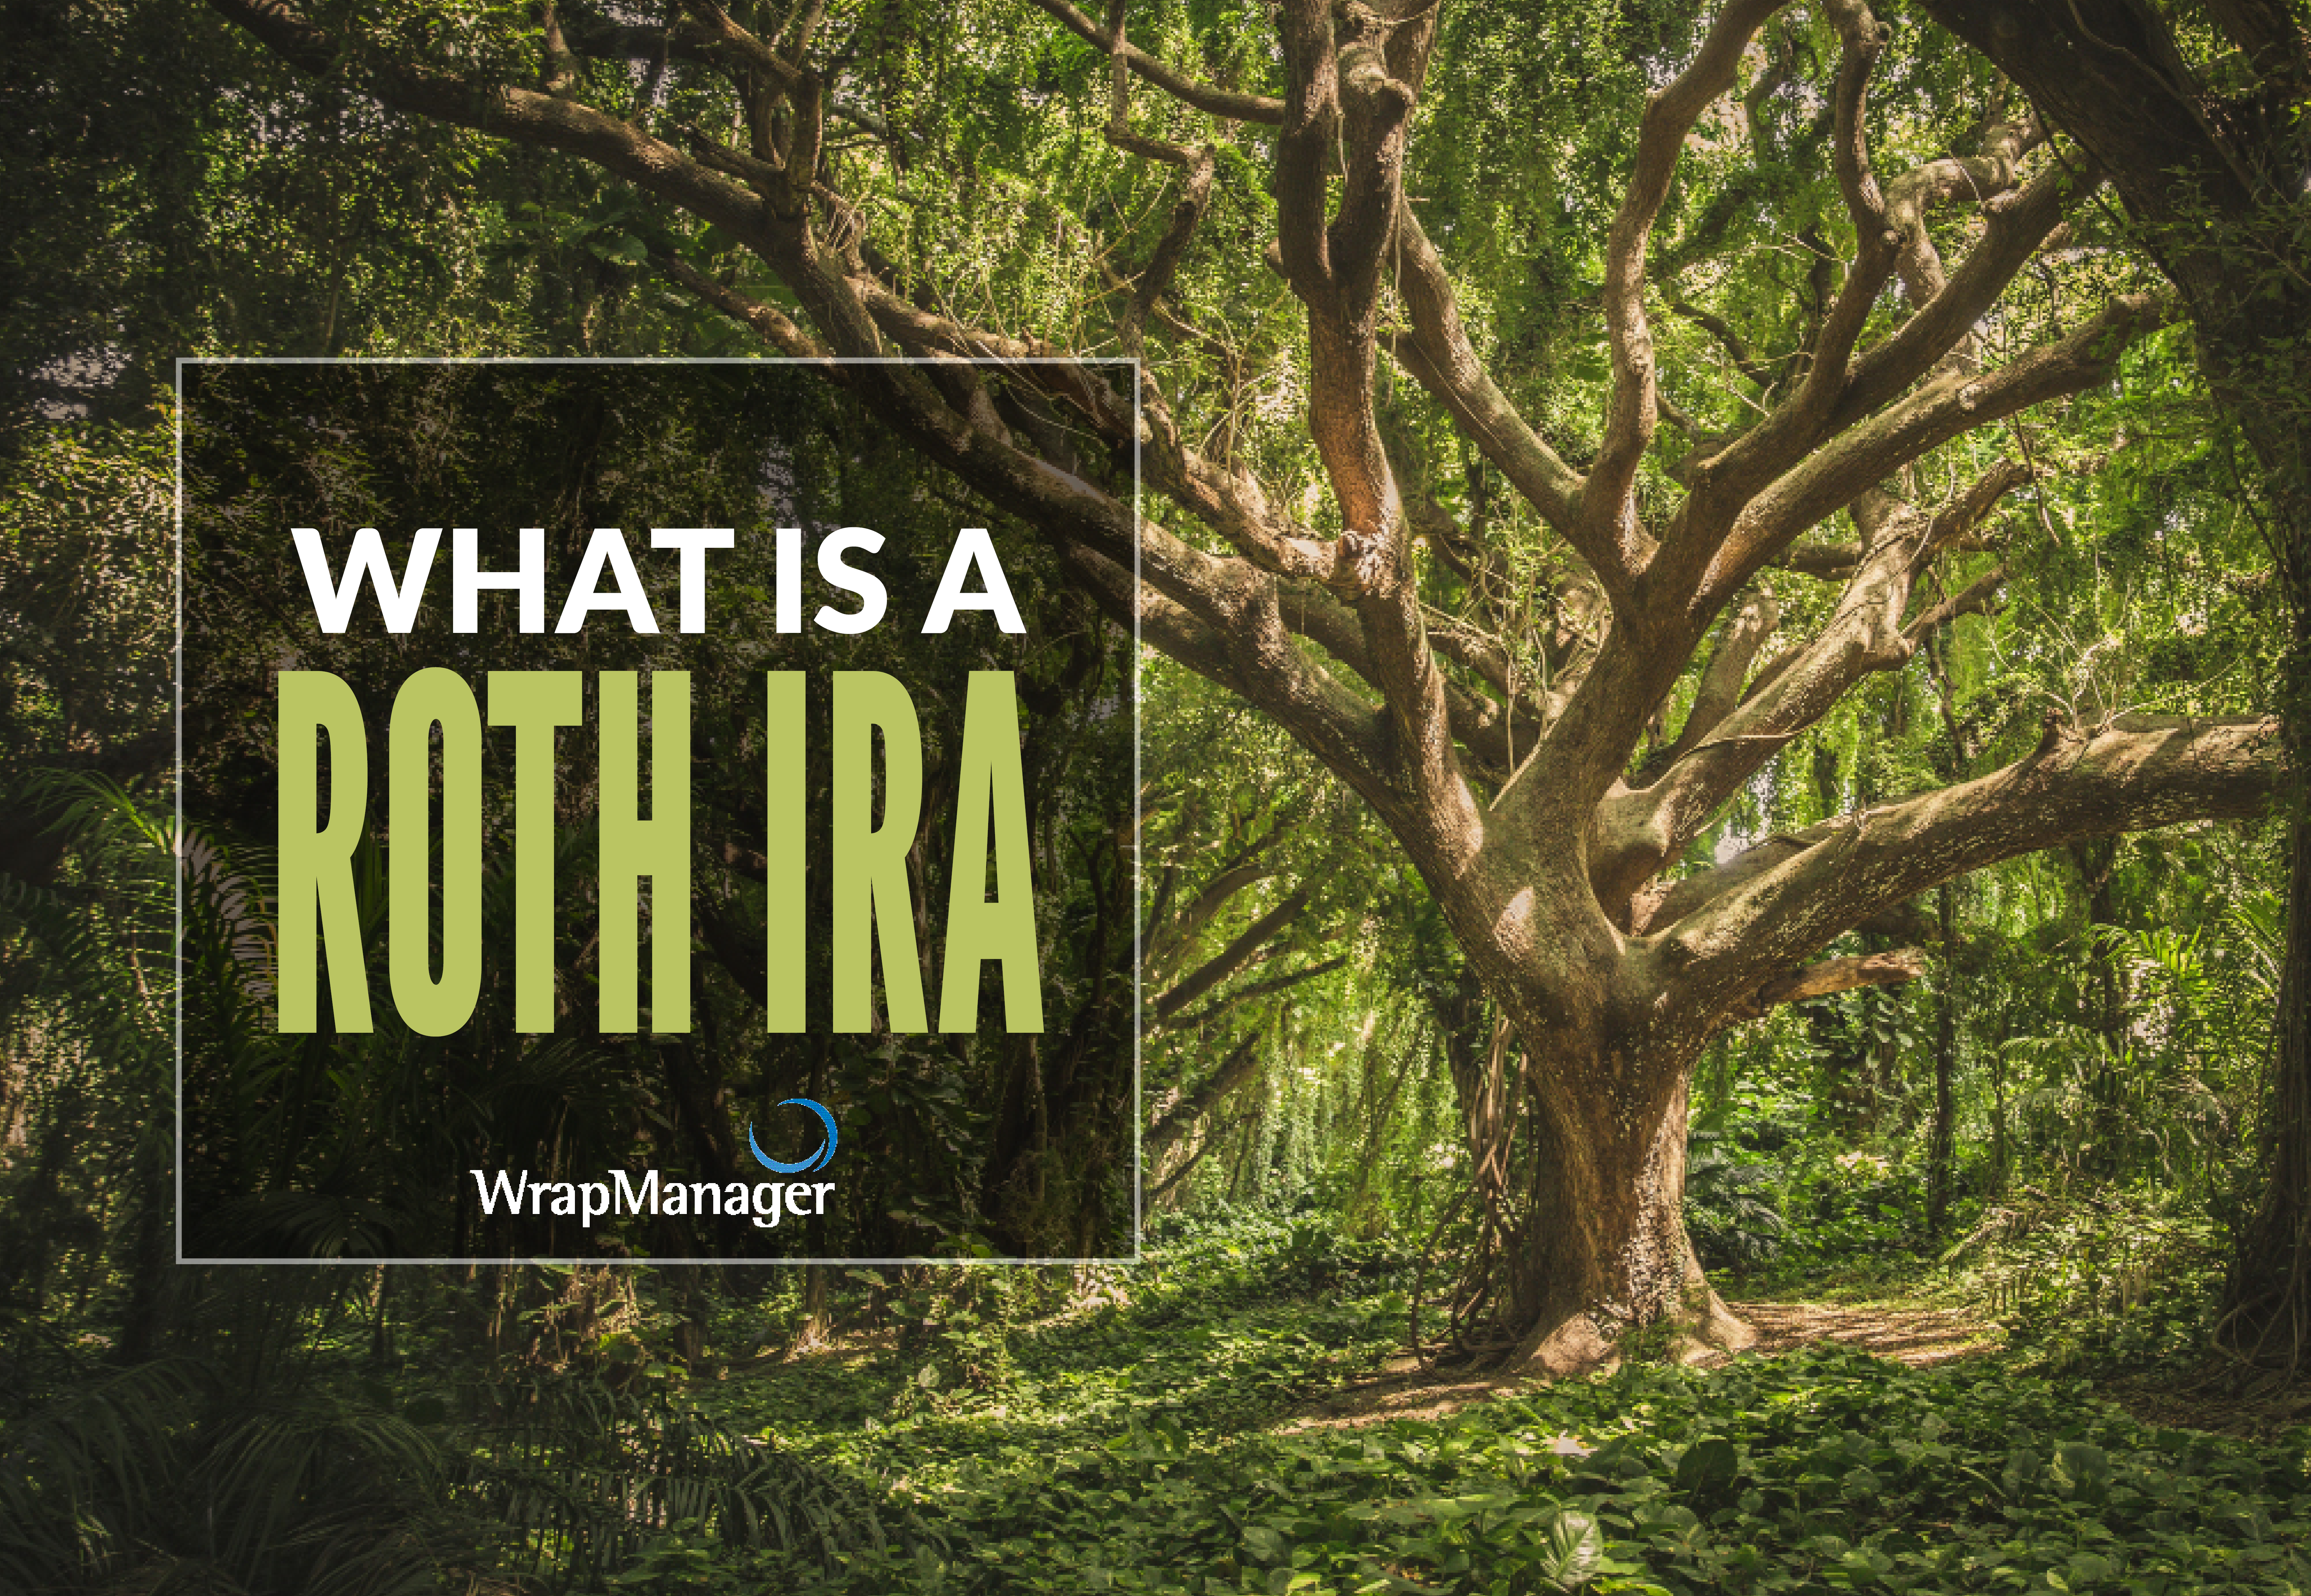 what is a roth ira.png